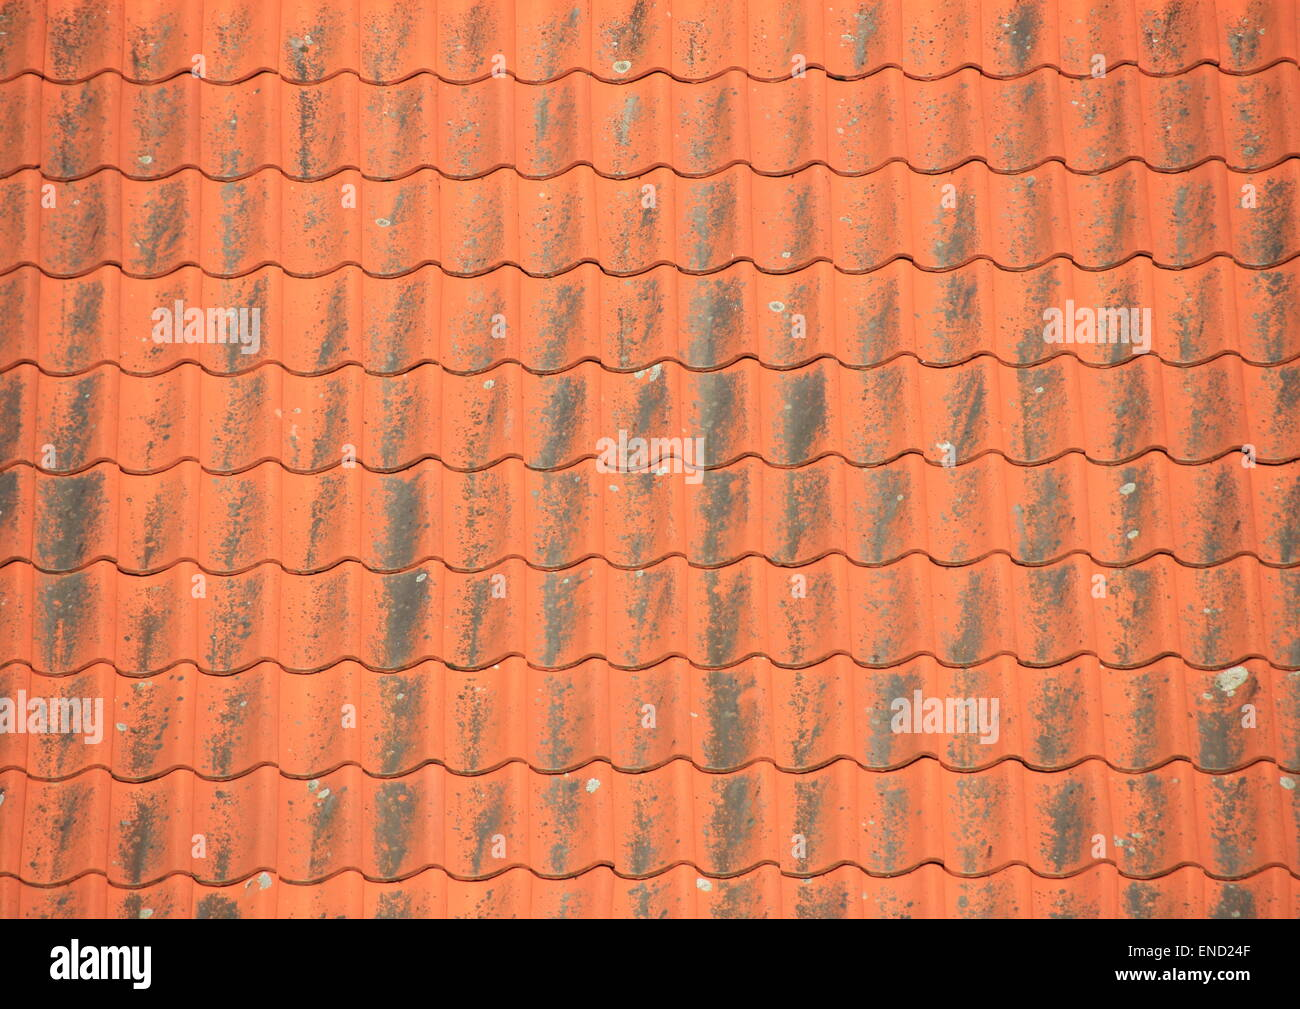 Old Red Roof Tiles With Black Patina